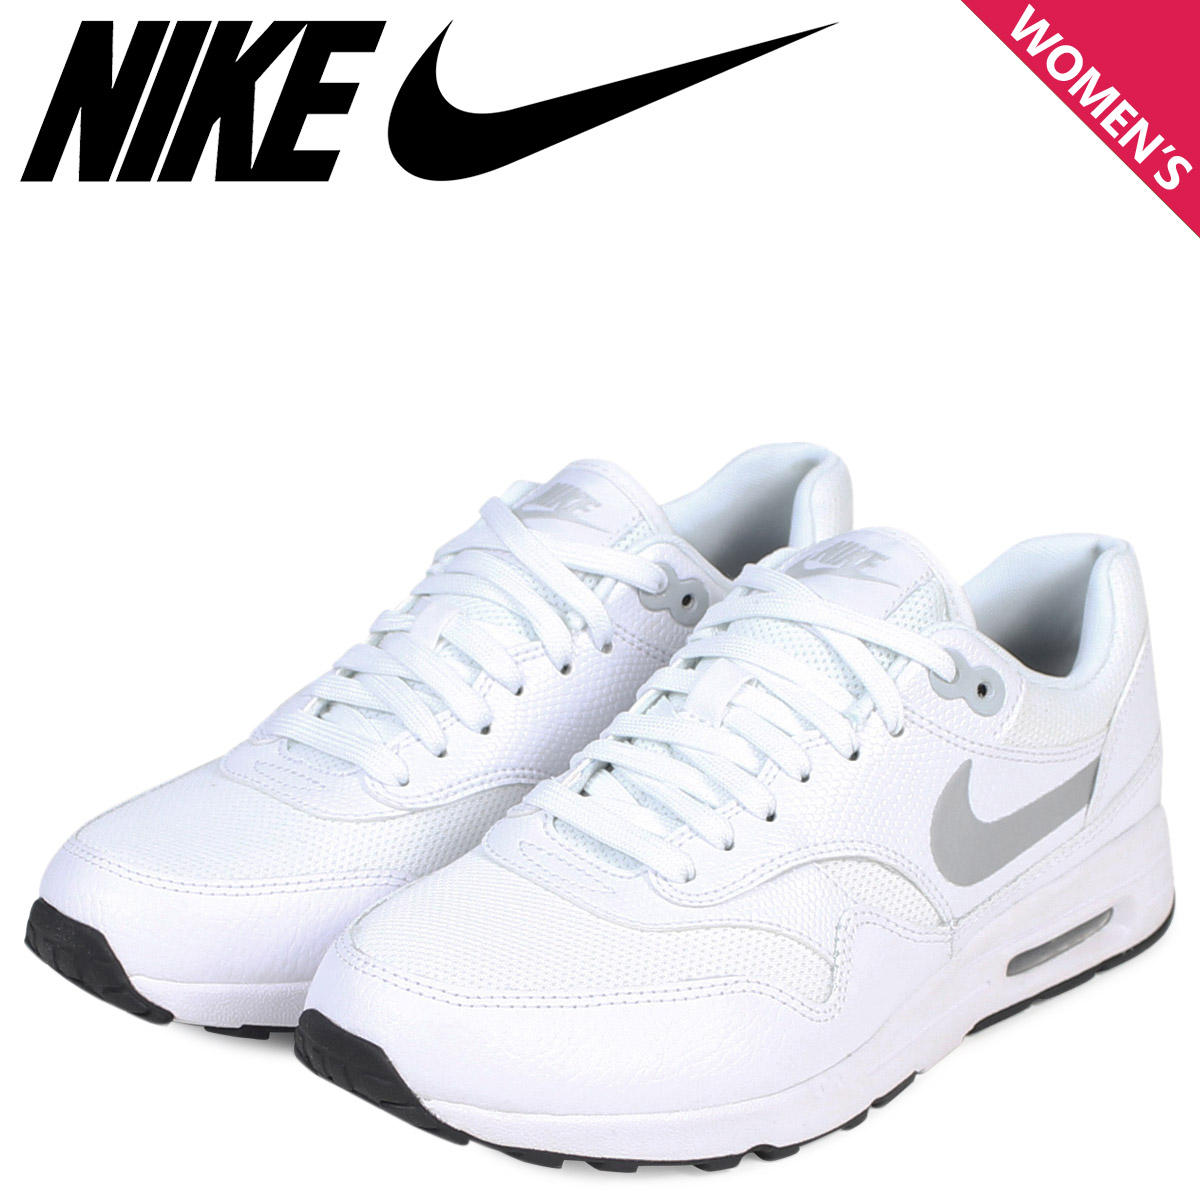 NIKE Kie Ney AMAX 1 ultra 2.0 Lady's sneakers WMNS AIR MAX 1 ULTRA 881,104 100 shoes white white